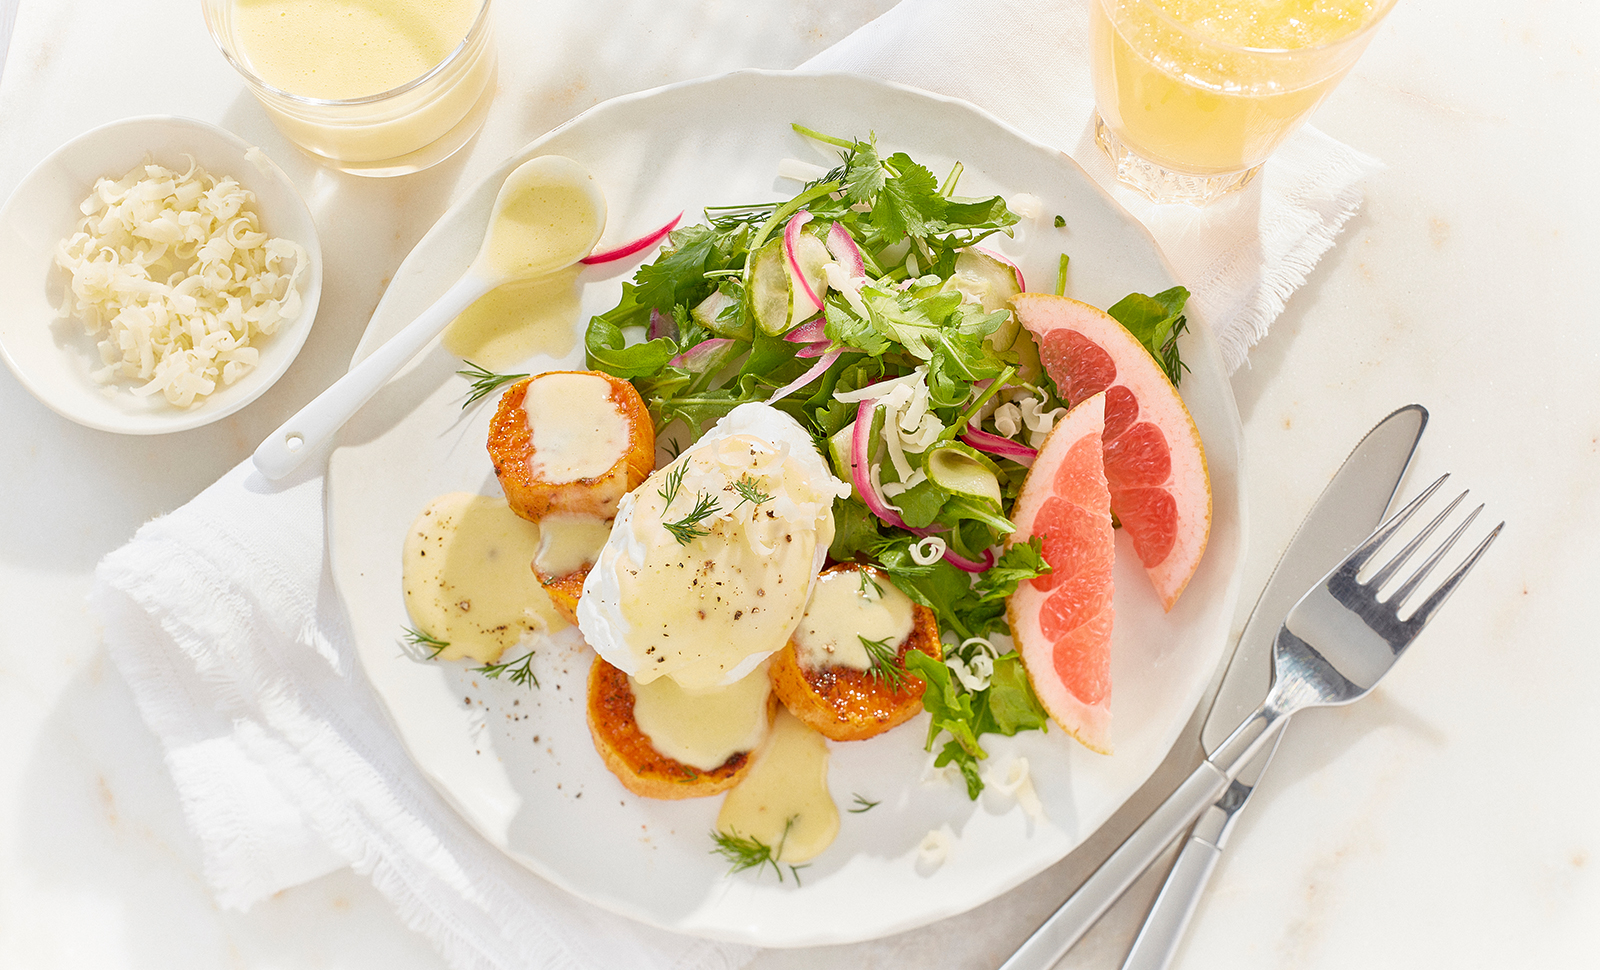 Eggs benedict on a plate served with leafy greens, orange slices and cheddar cheese shreds.